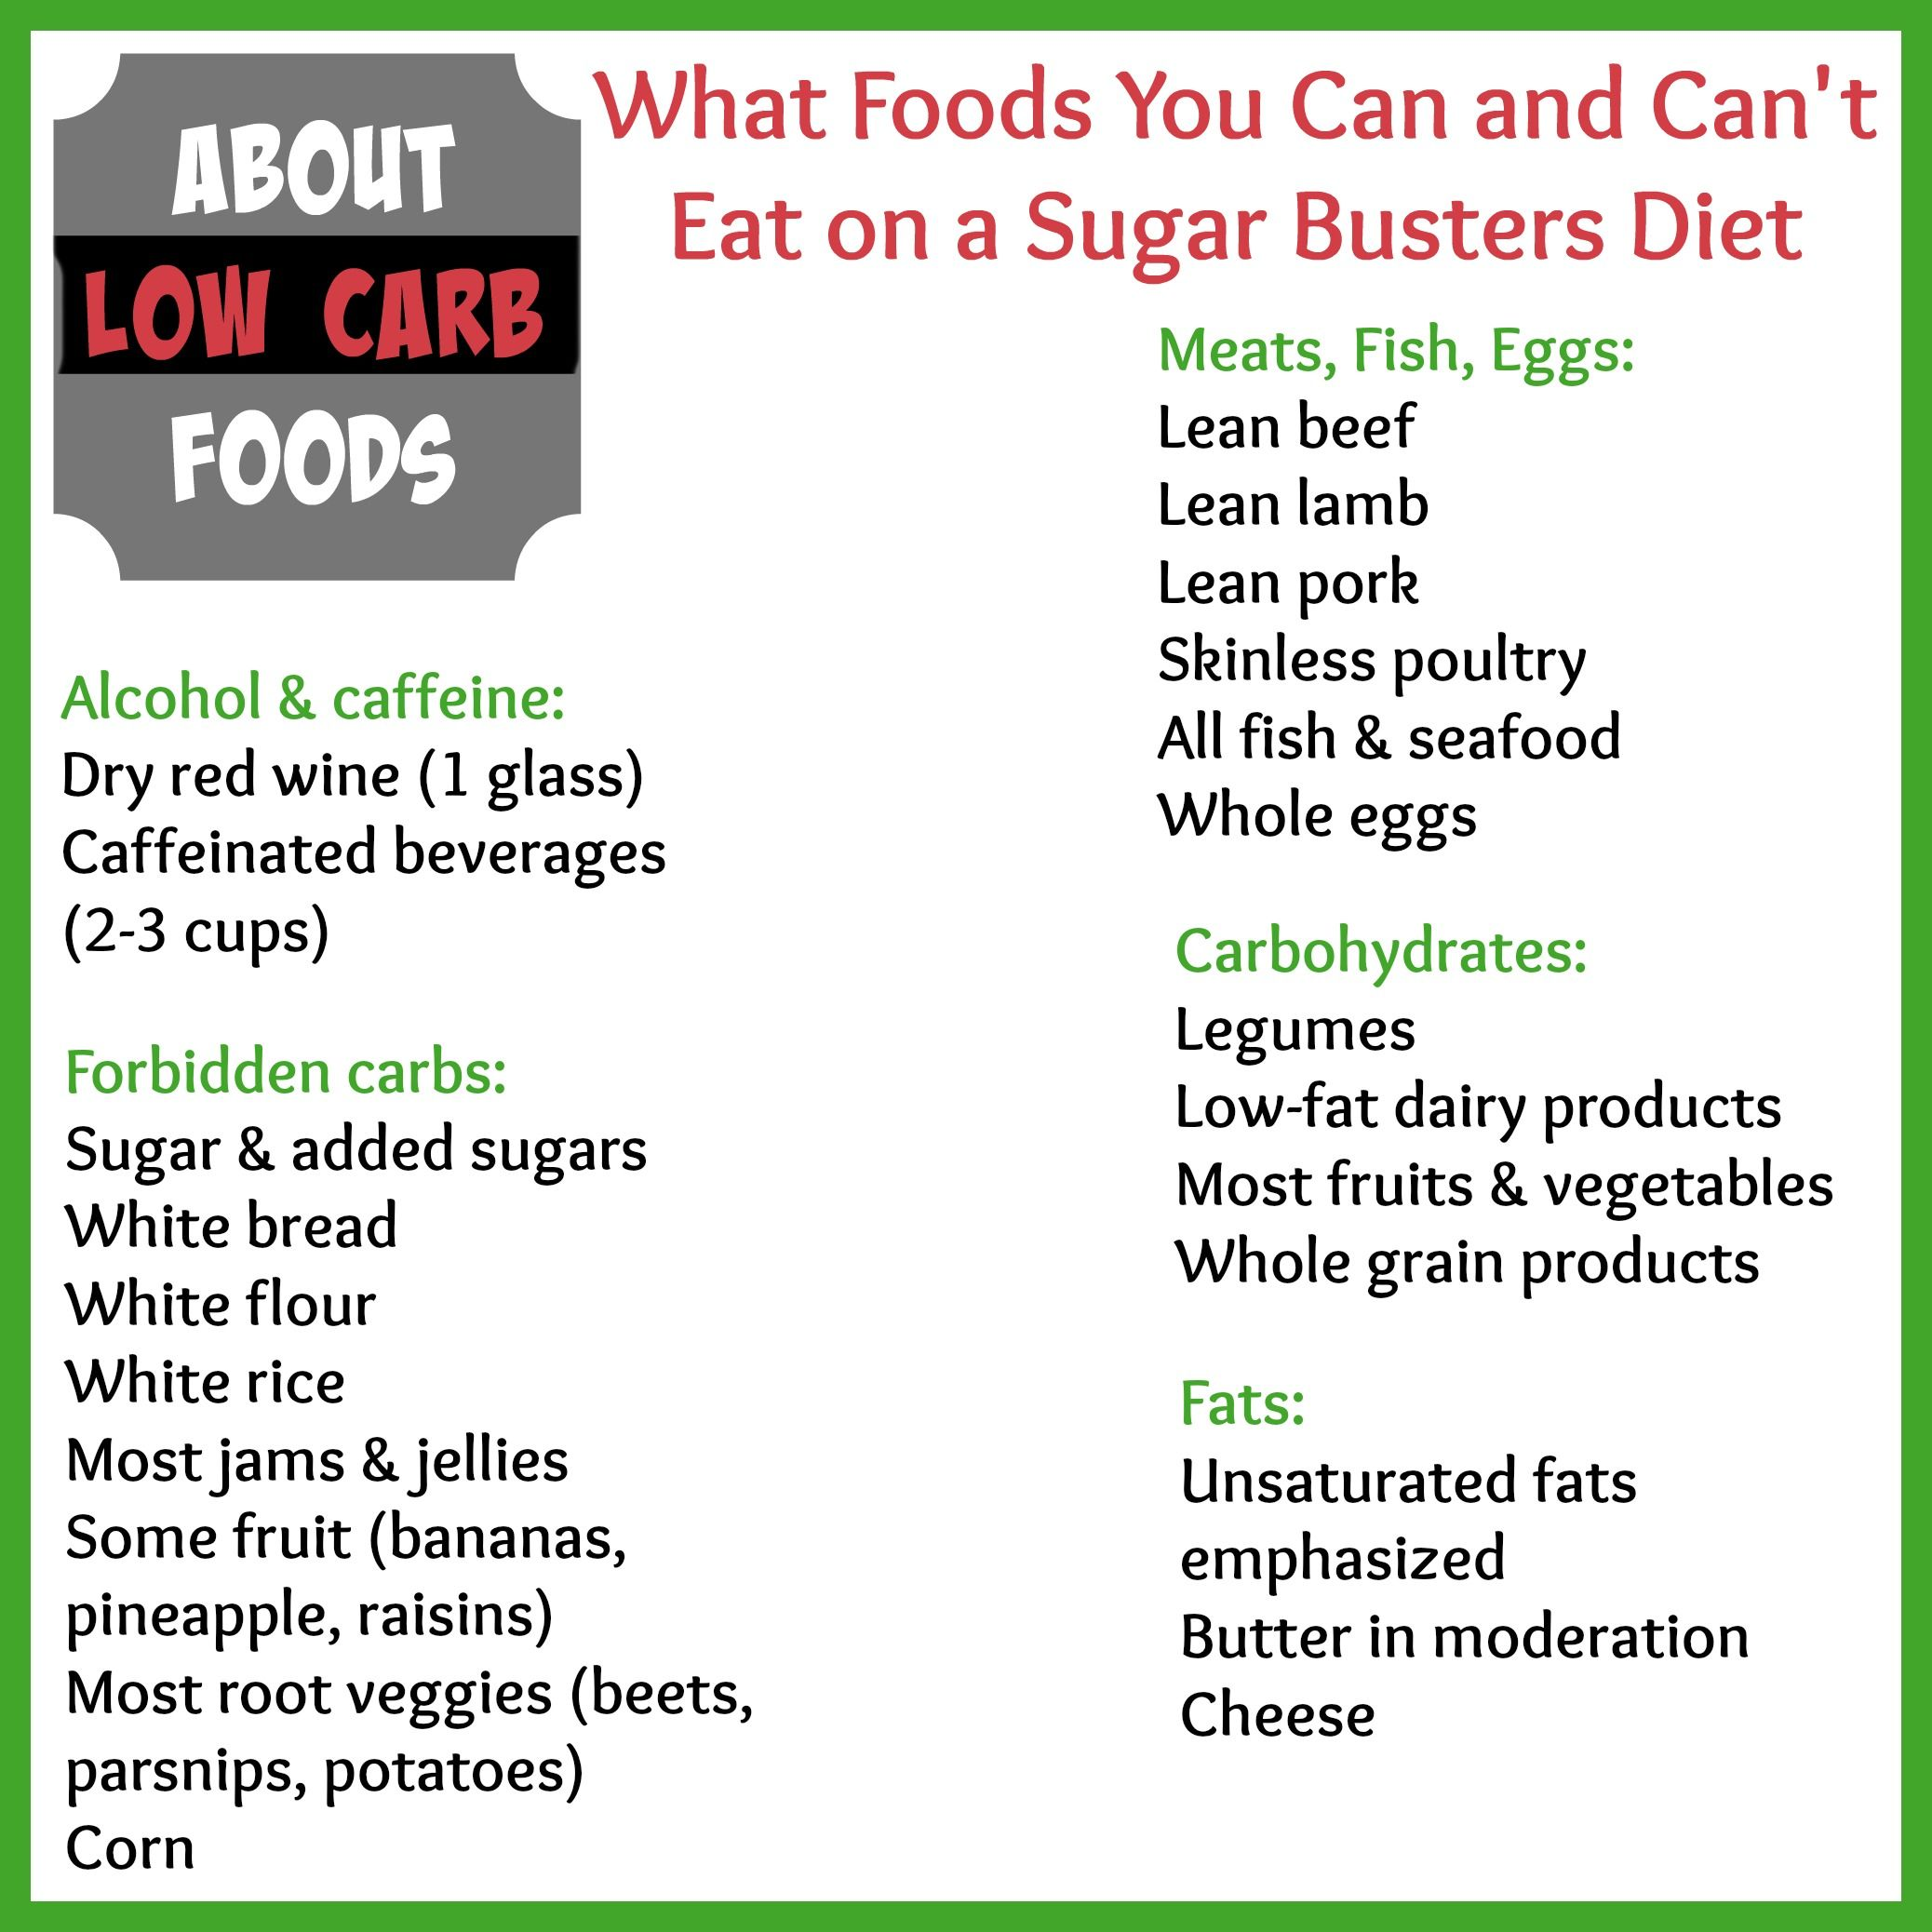 What Does A Low Carb Diet Consist Of